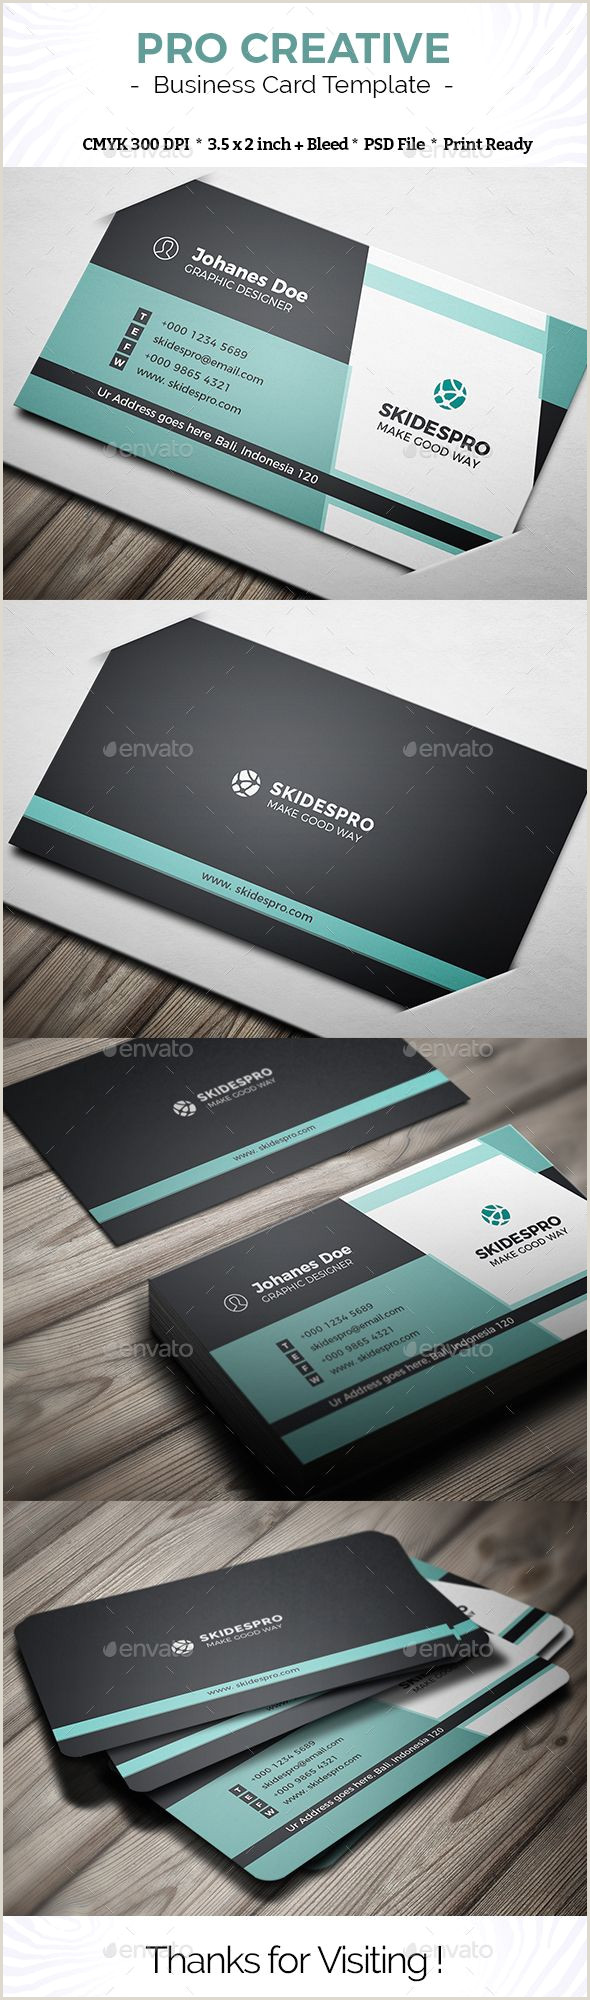 Cute Business Cards Pro Creative Business Card Template Psd